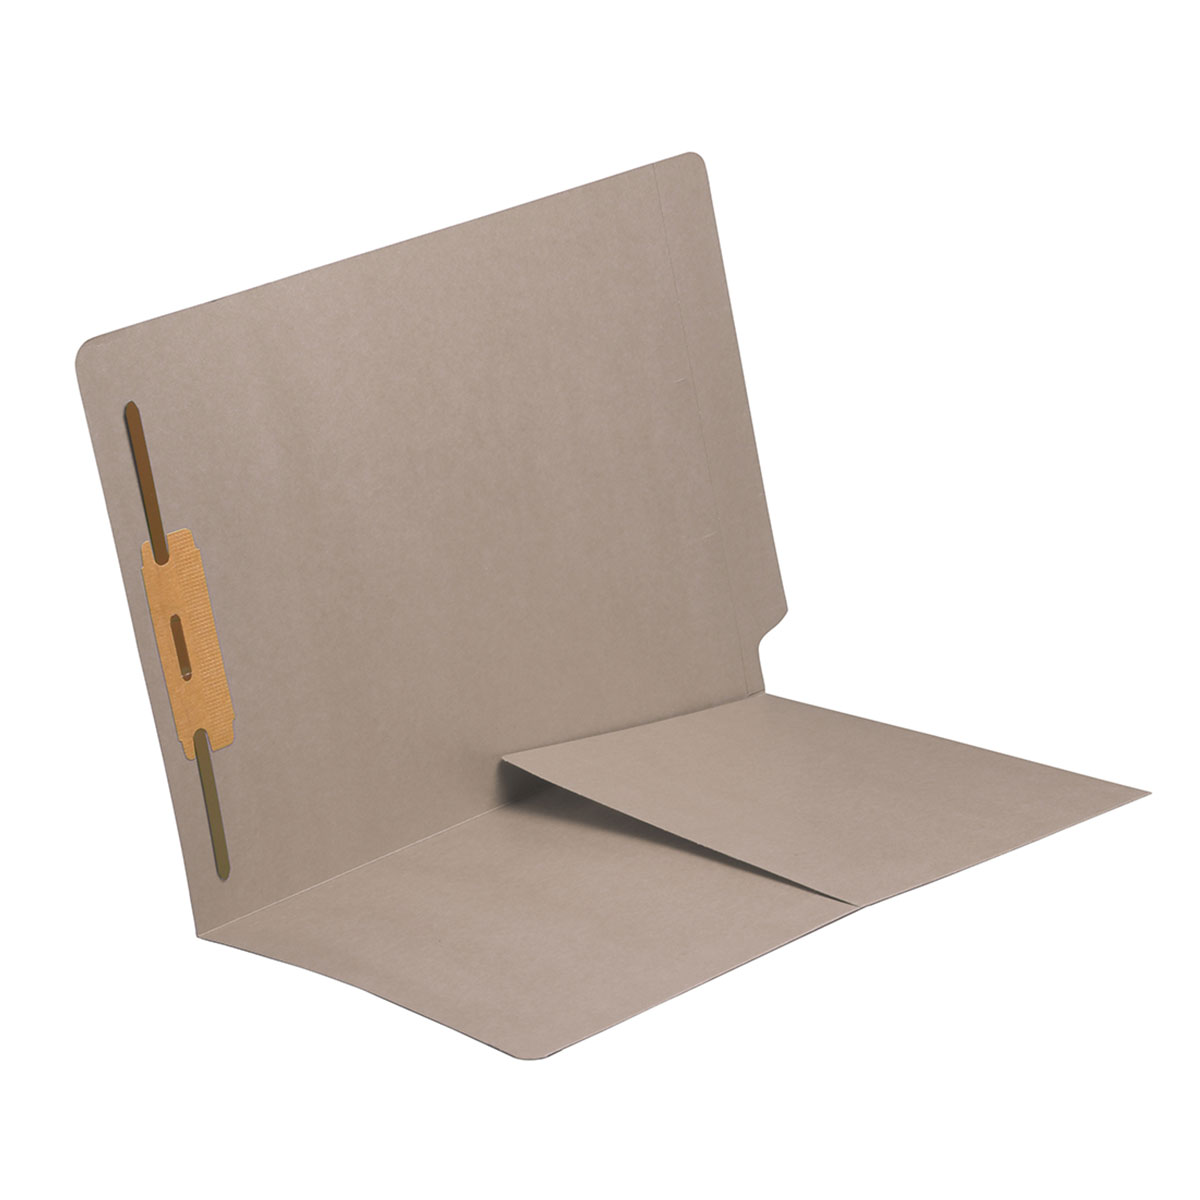 S-9010-GRY - 14 pt Gray Folders, Full Cut End Tab, Letter Size, 1/2 Pocket Inside Front, Fastener Pos #1 (Box of 50)